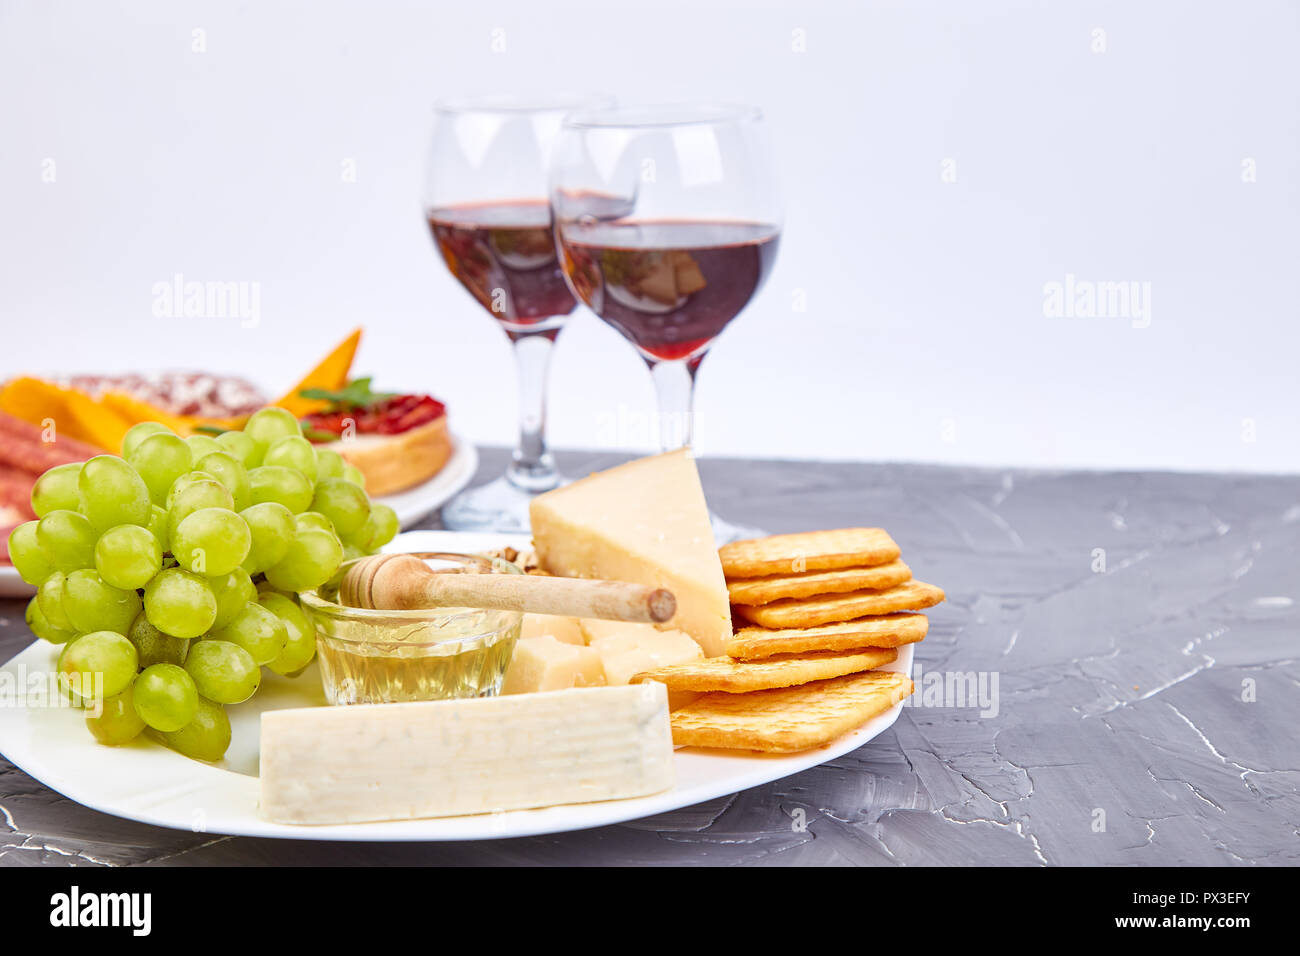 Cheese Plate Variety And Wine In Glasses On Grunge Grey Background Italian Antipasti Wine Snacks Set Copy Space Stock Photo Alamy